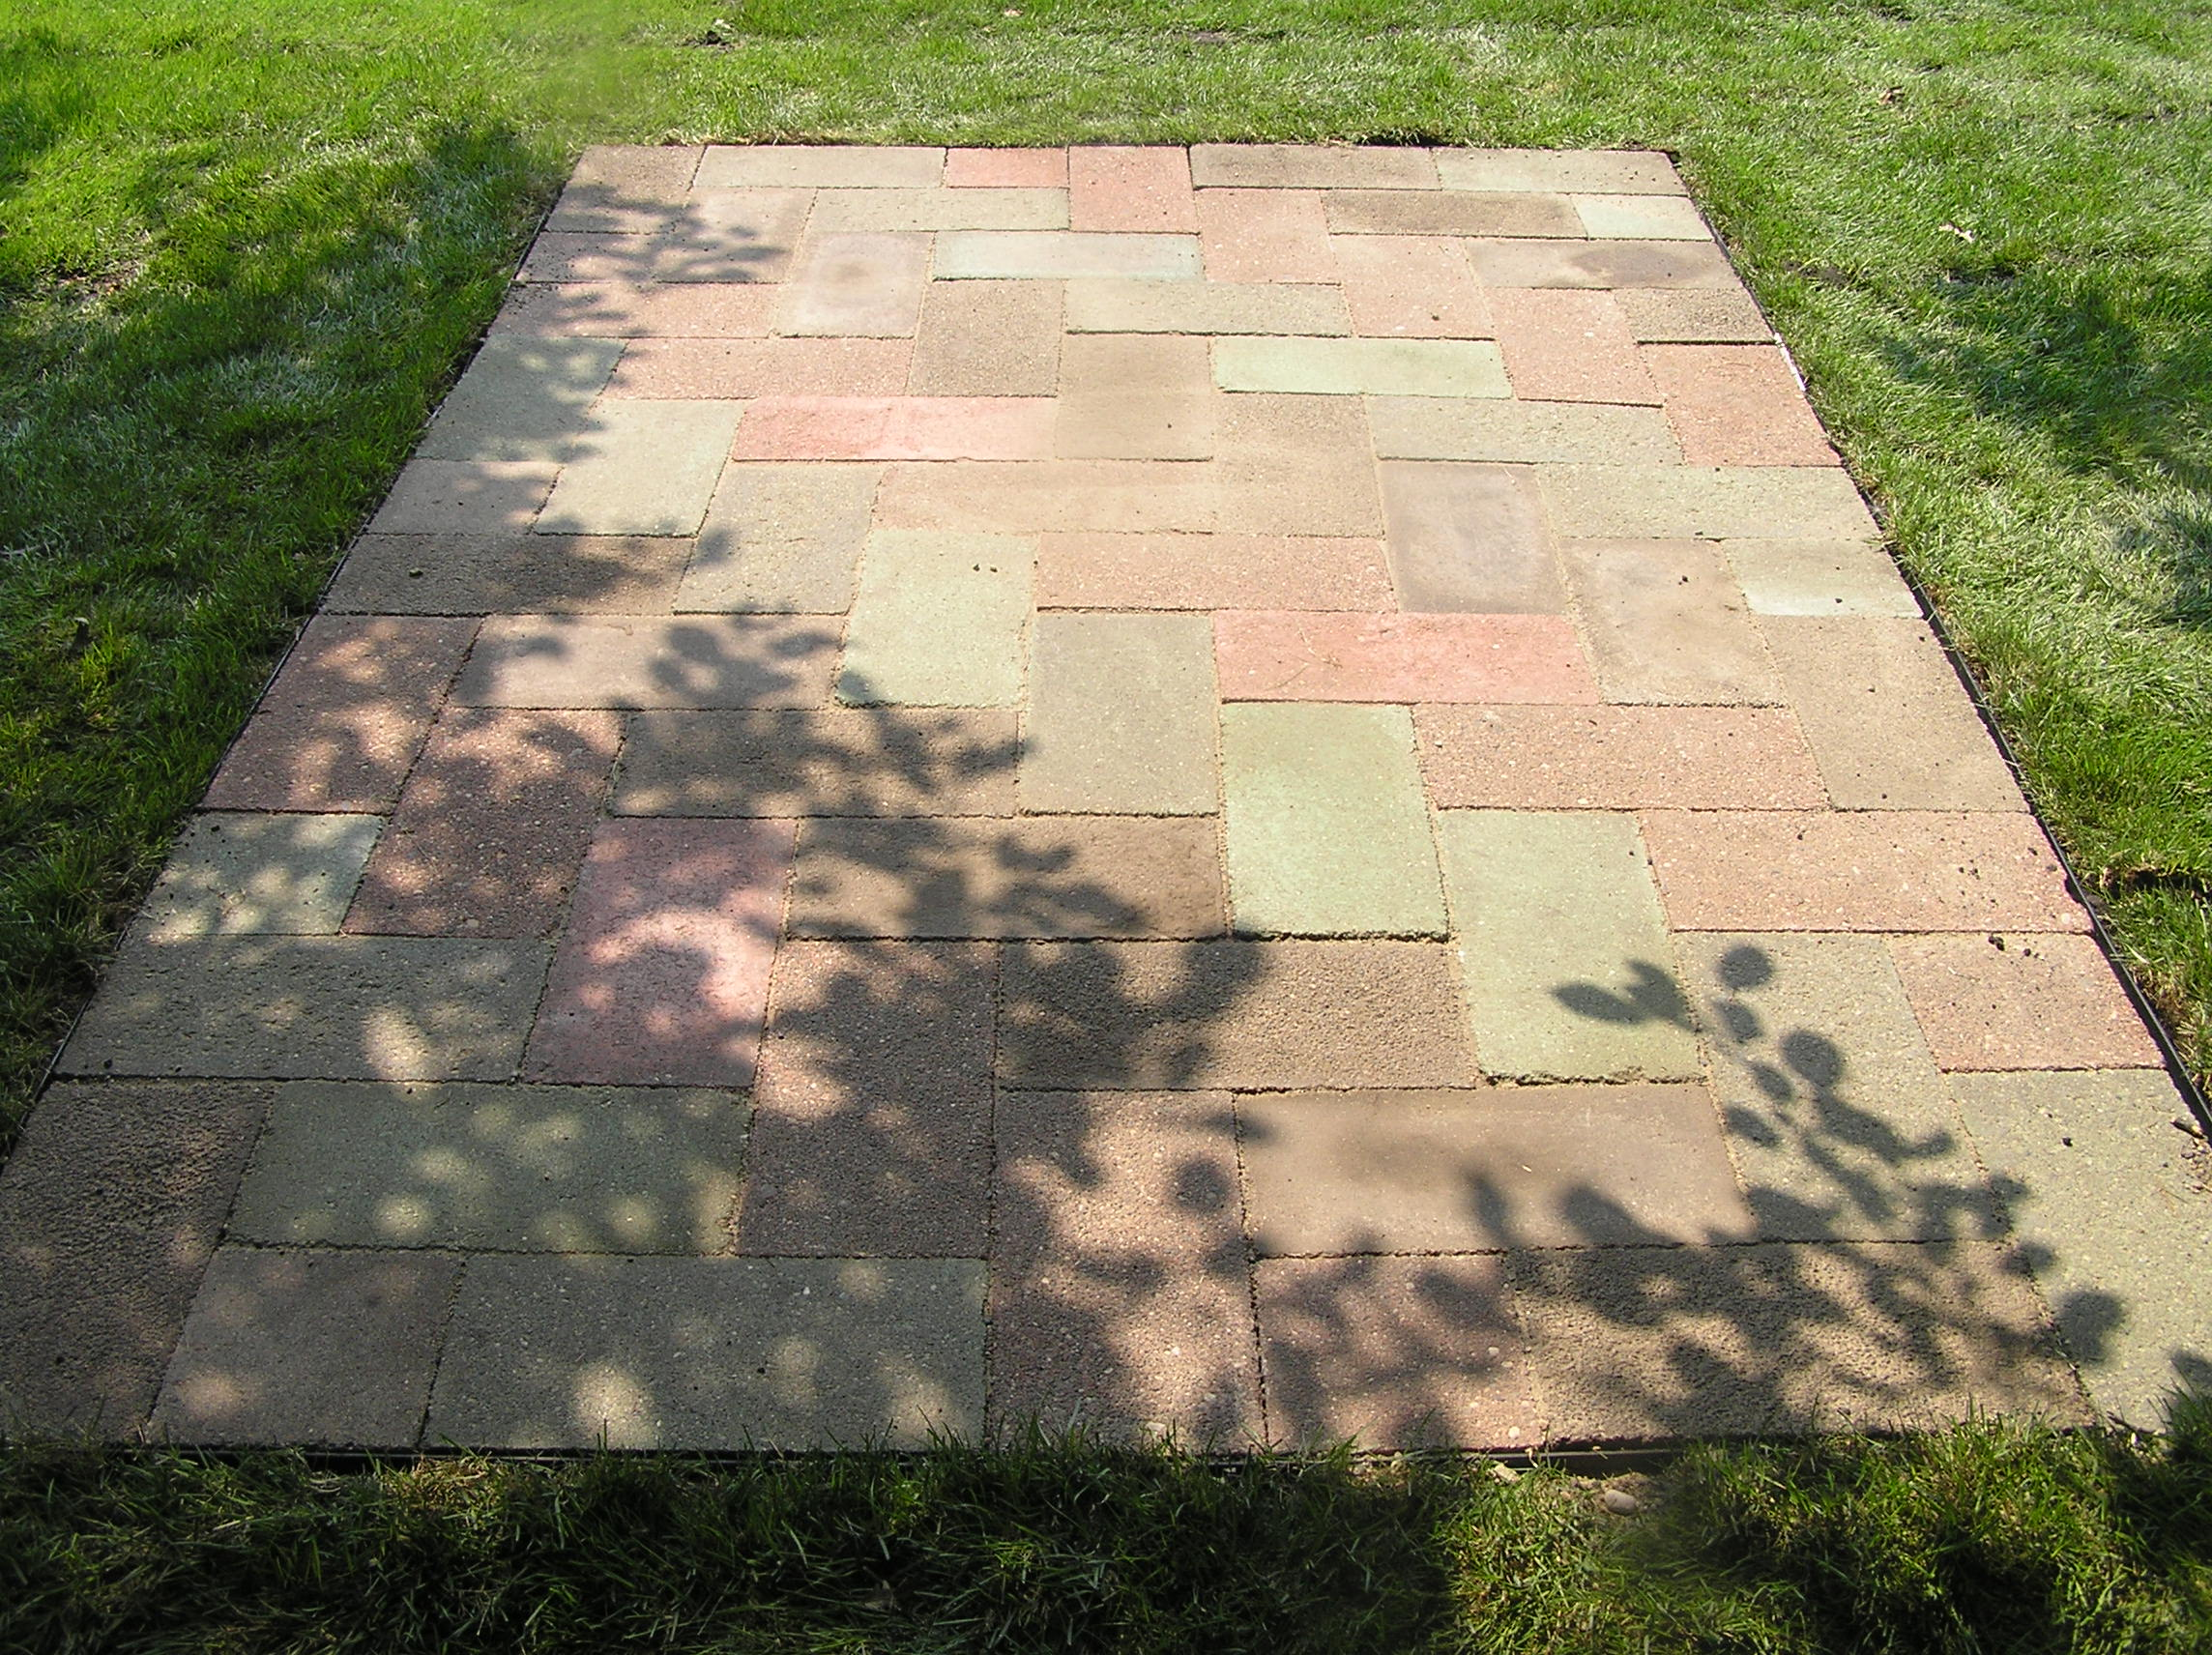 Building An Effective And Beautiful Patio With Reclaimed Brick | Cawarden  Blog